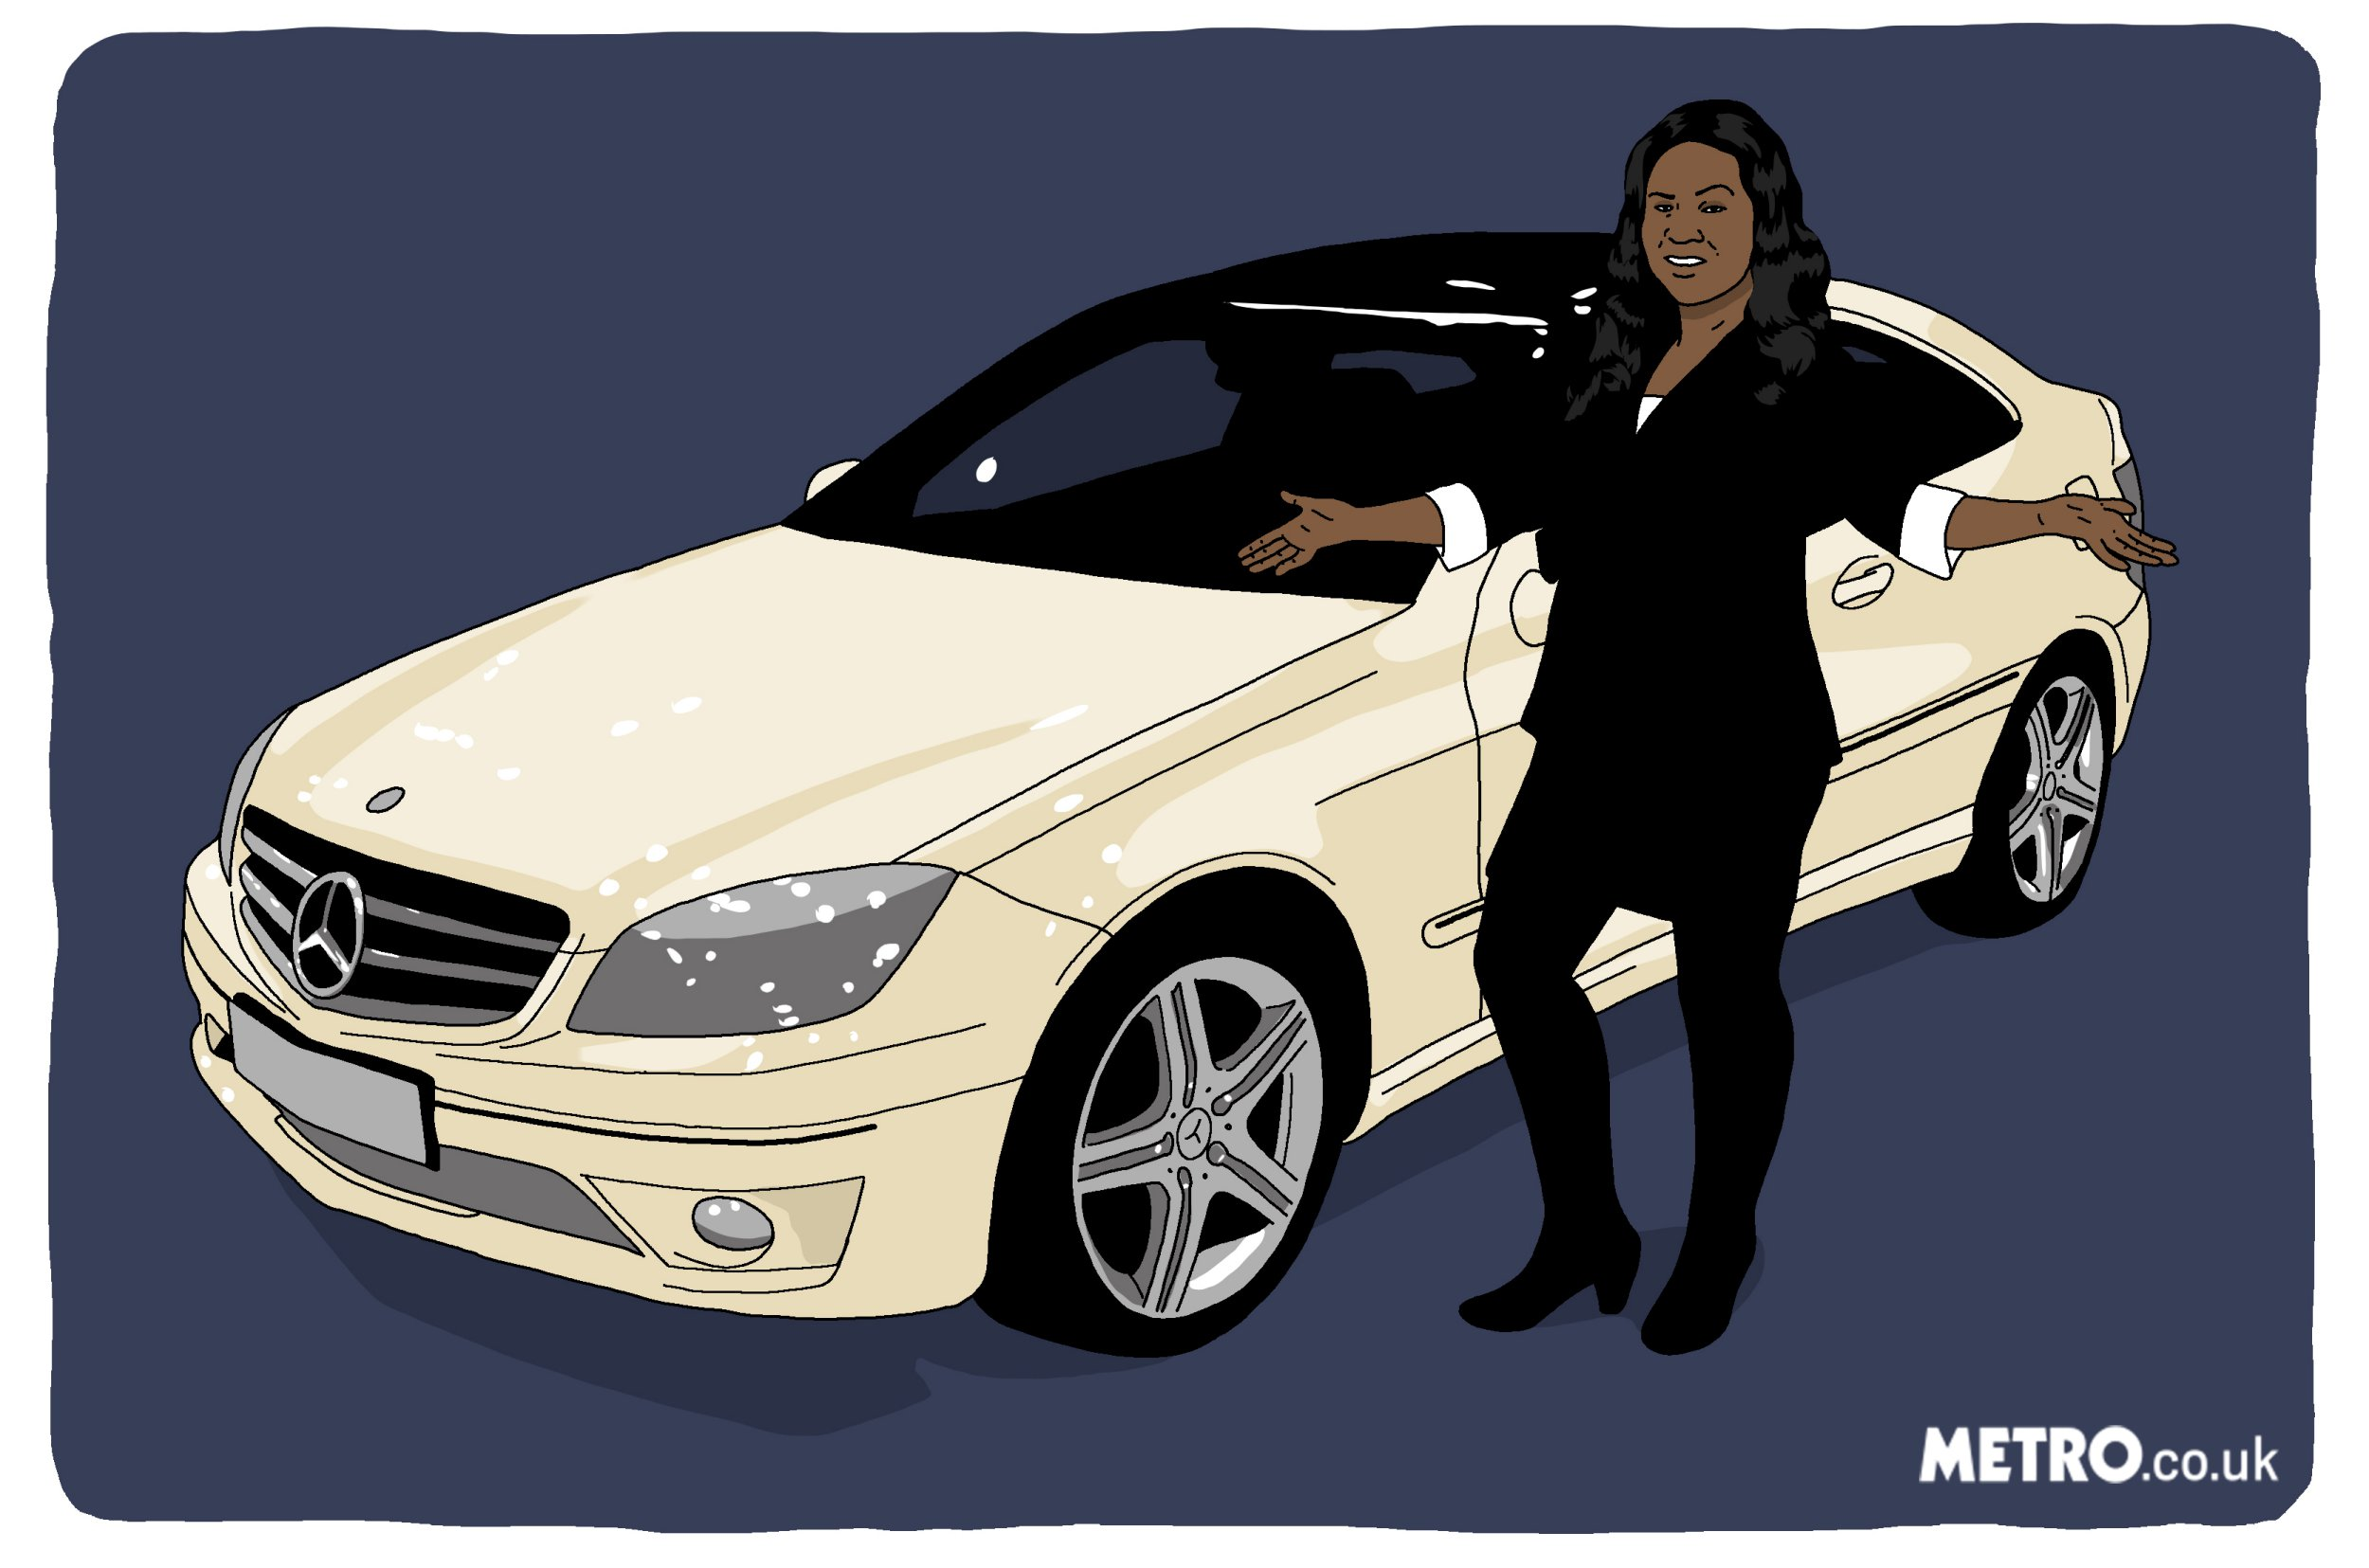 It's a token of success, but is my Mercedes the reason I'm single?